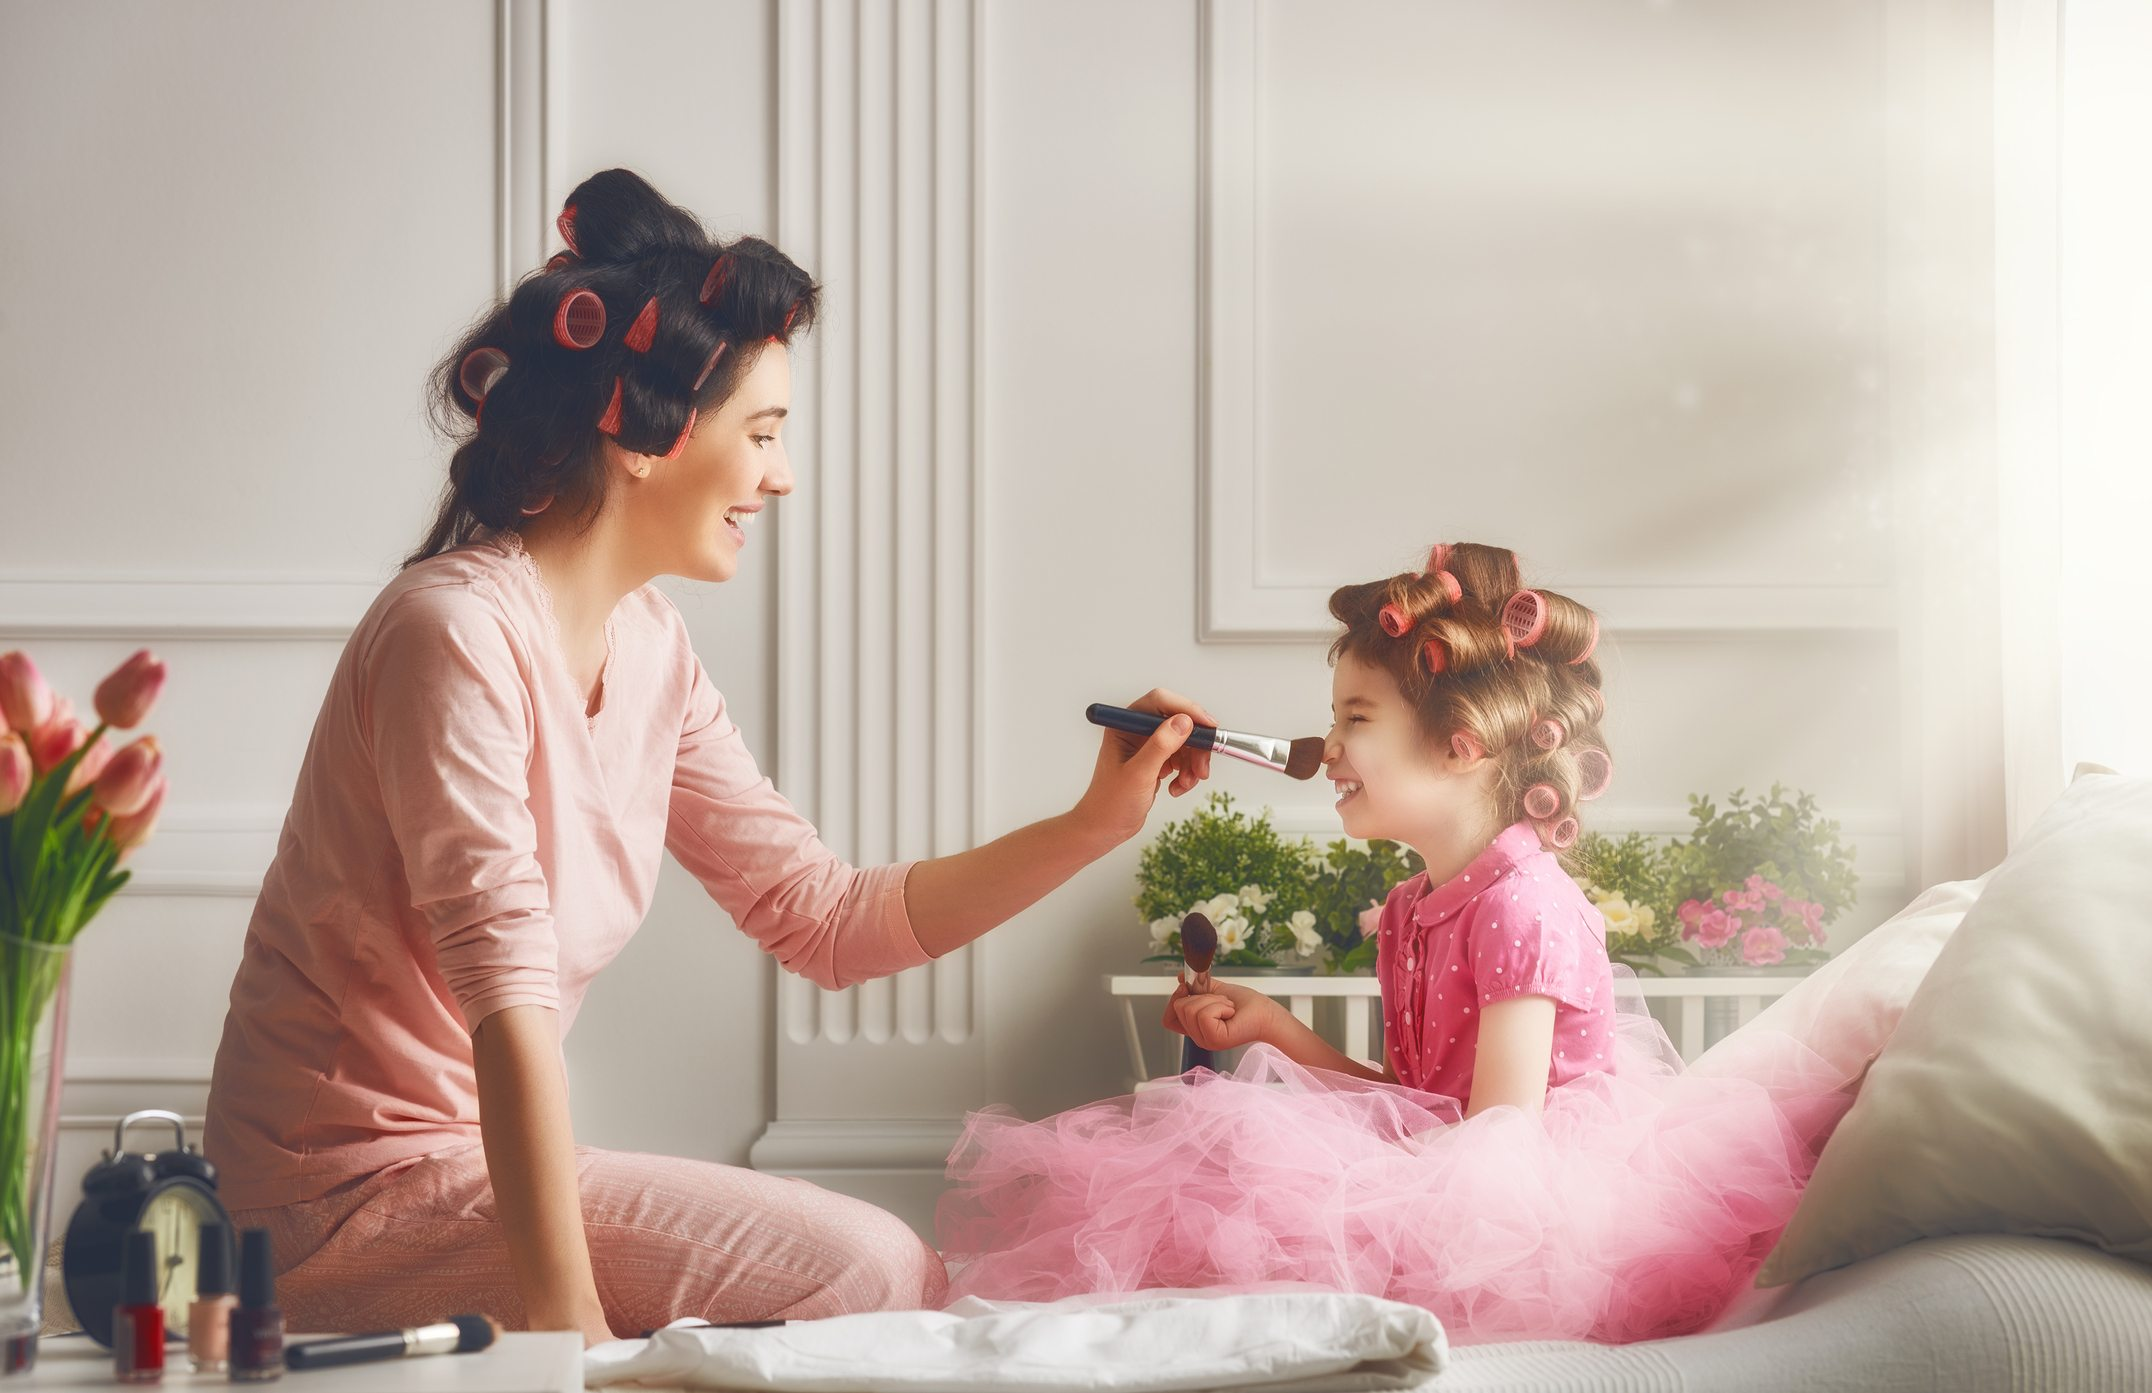 mom playing dress up with daughter inside their home